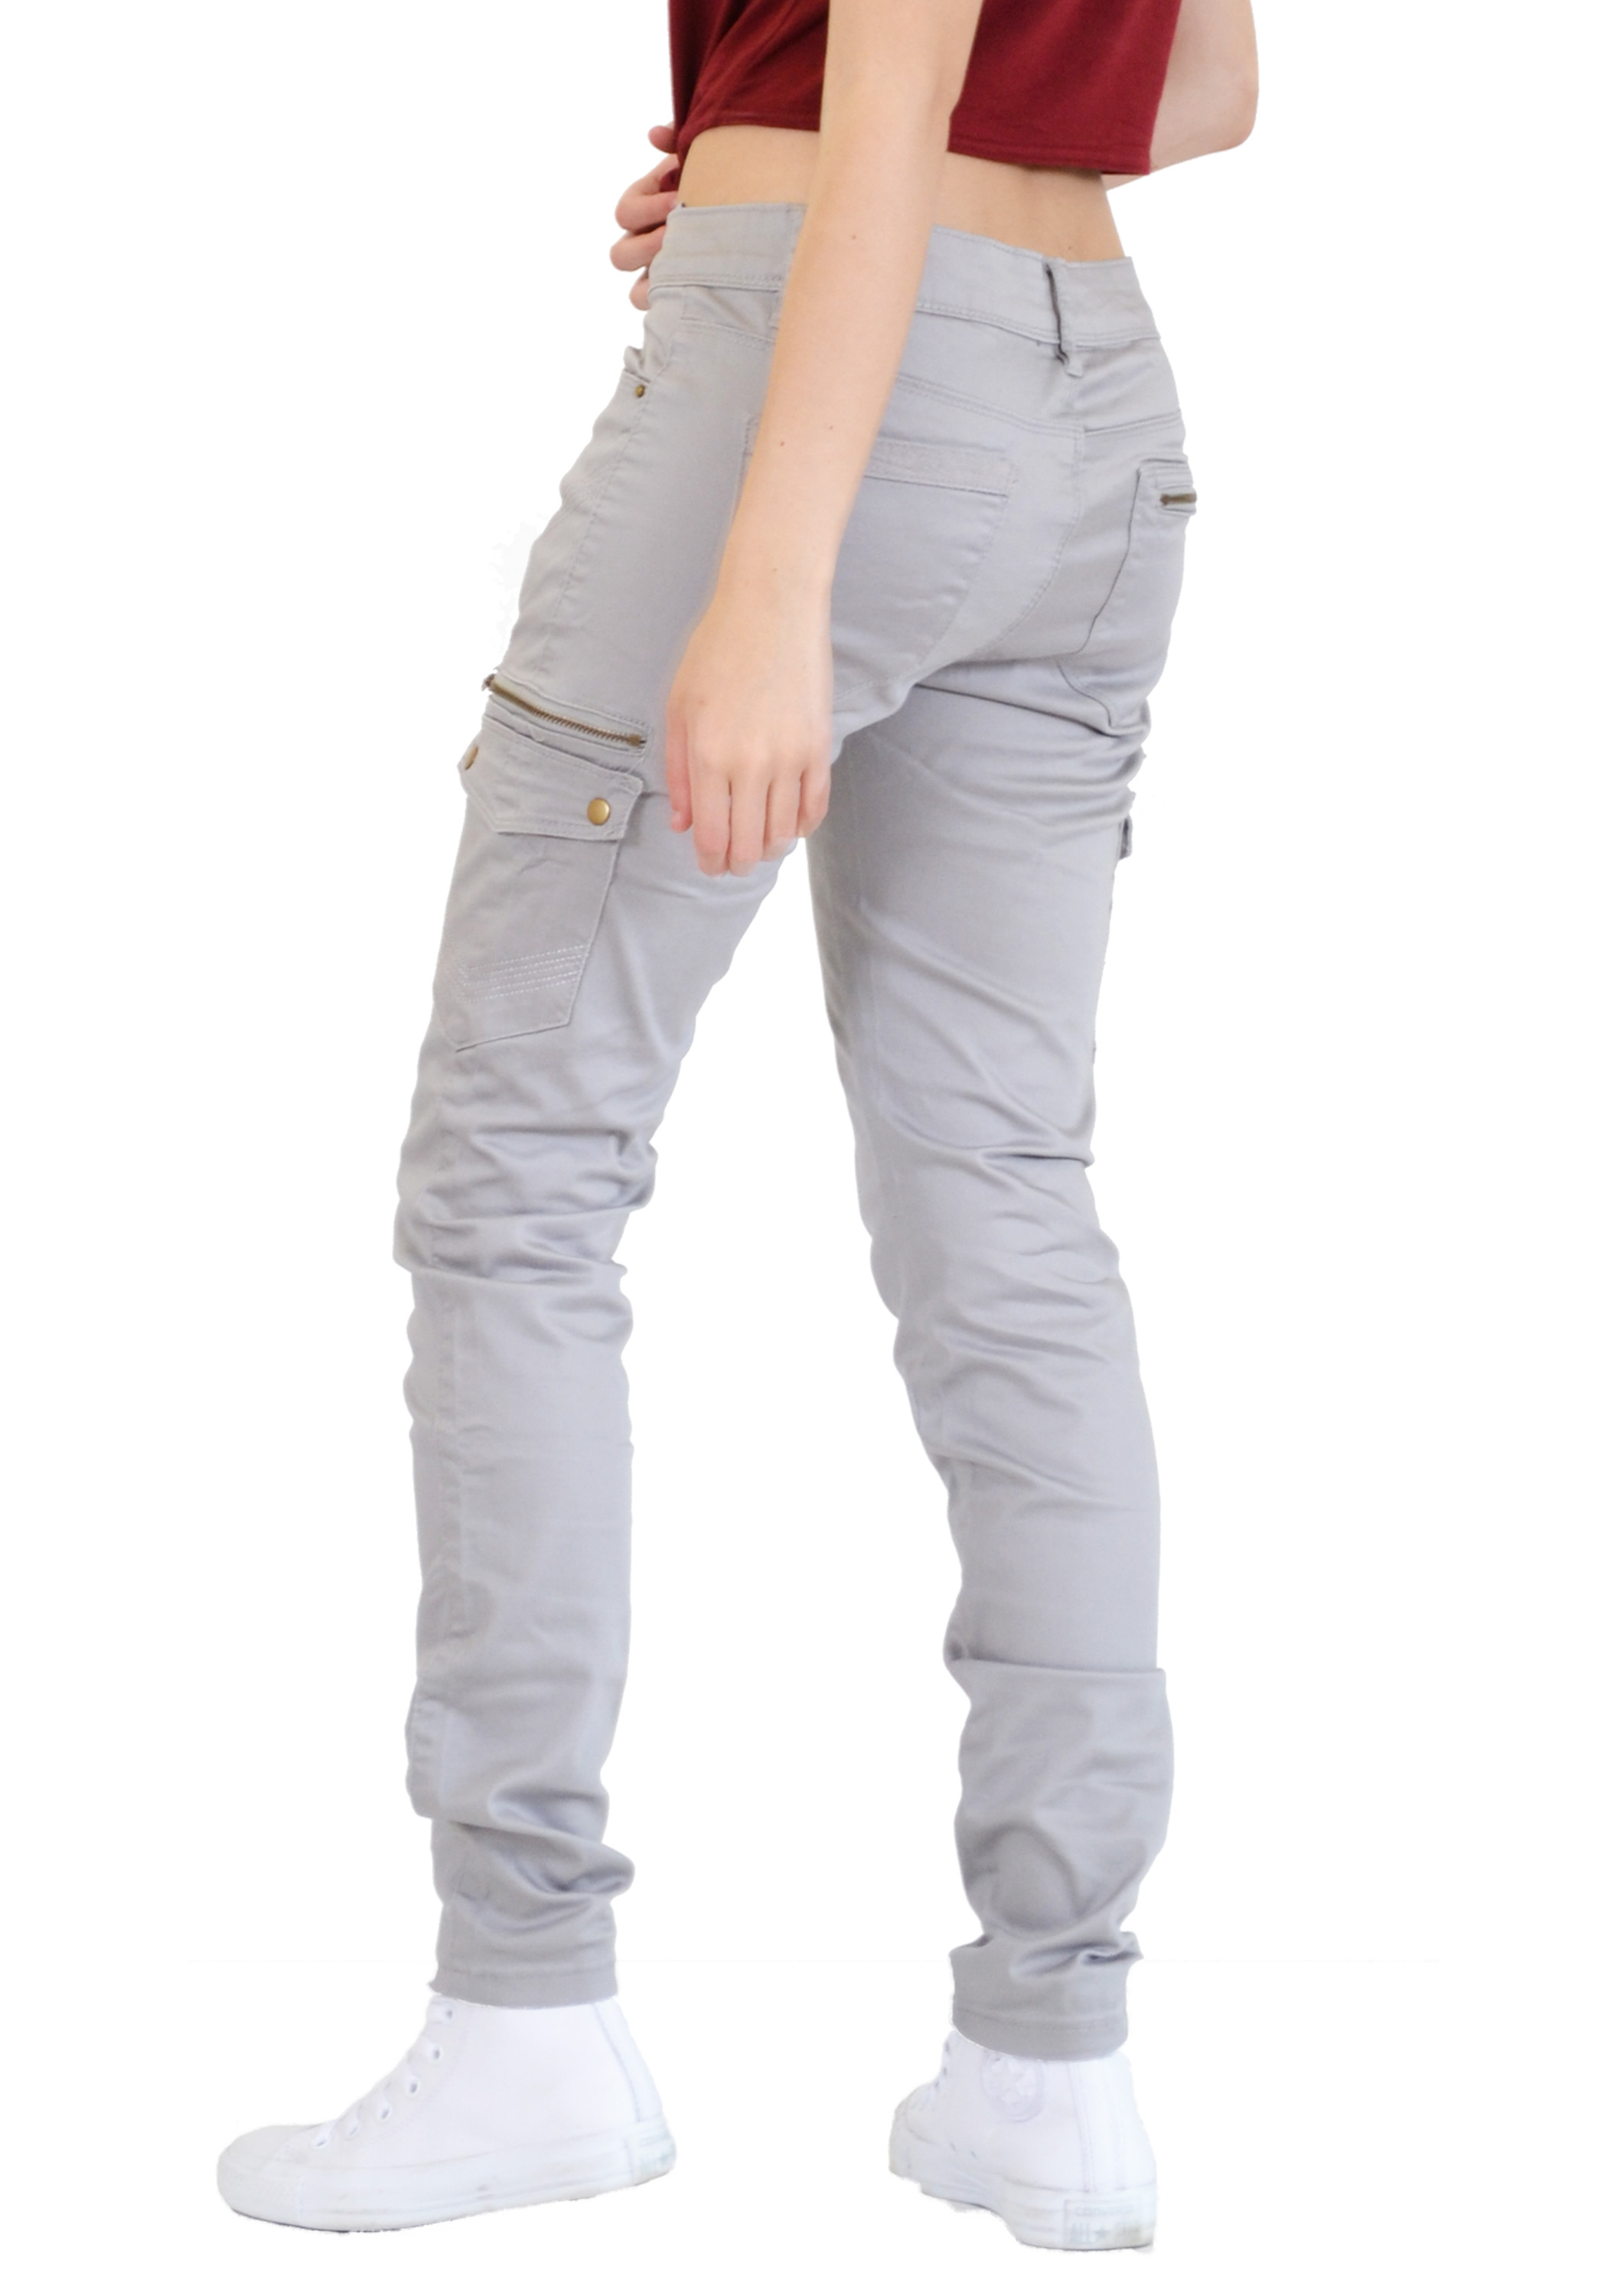 Simple  Fitted Cargo Pant  Clothing  Women39s Clothing  Women39s Pants